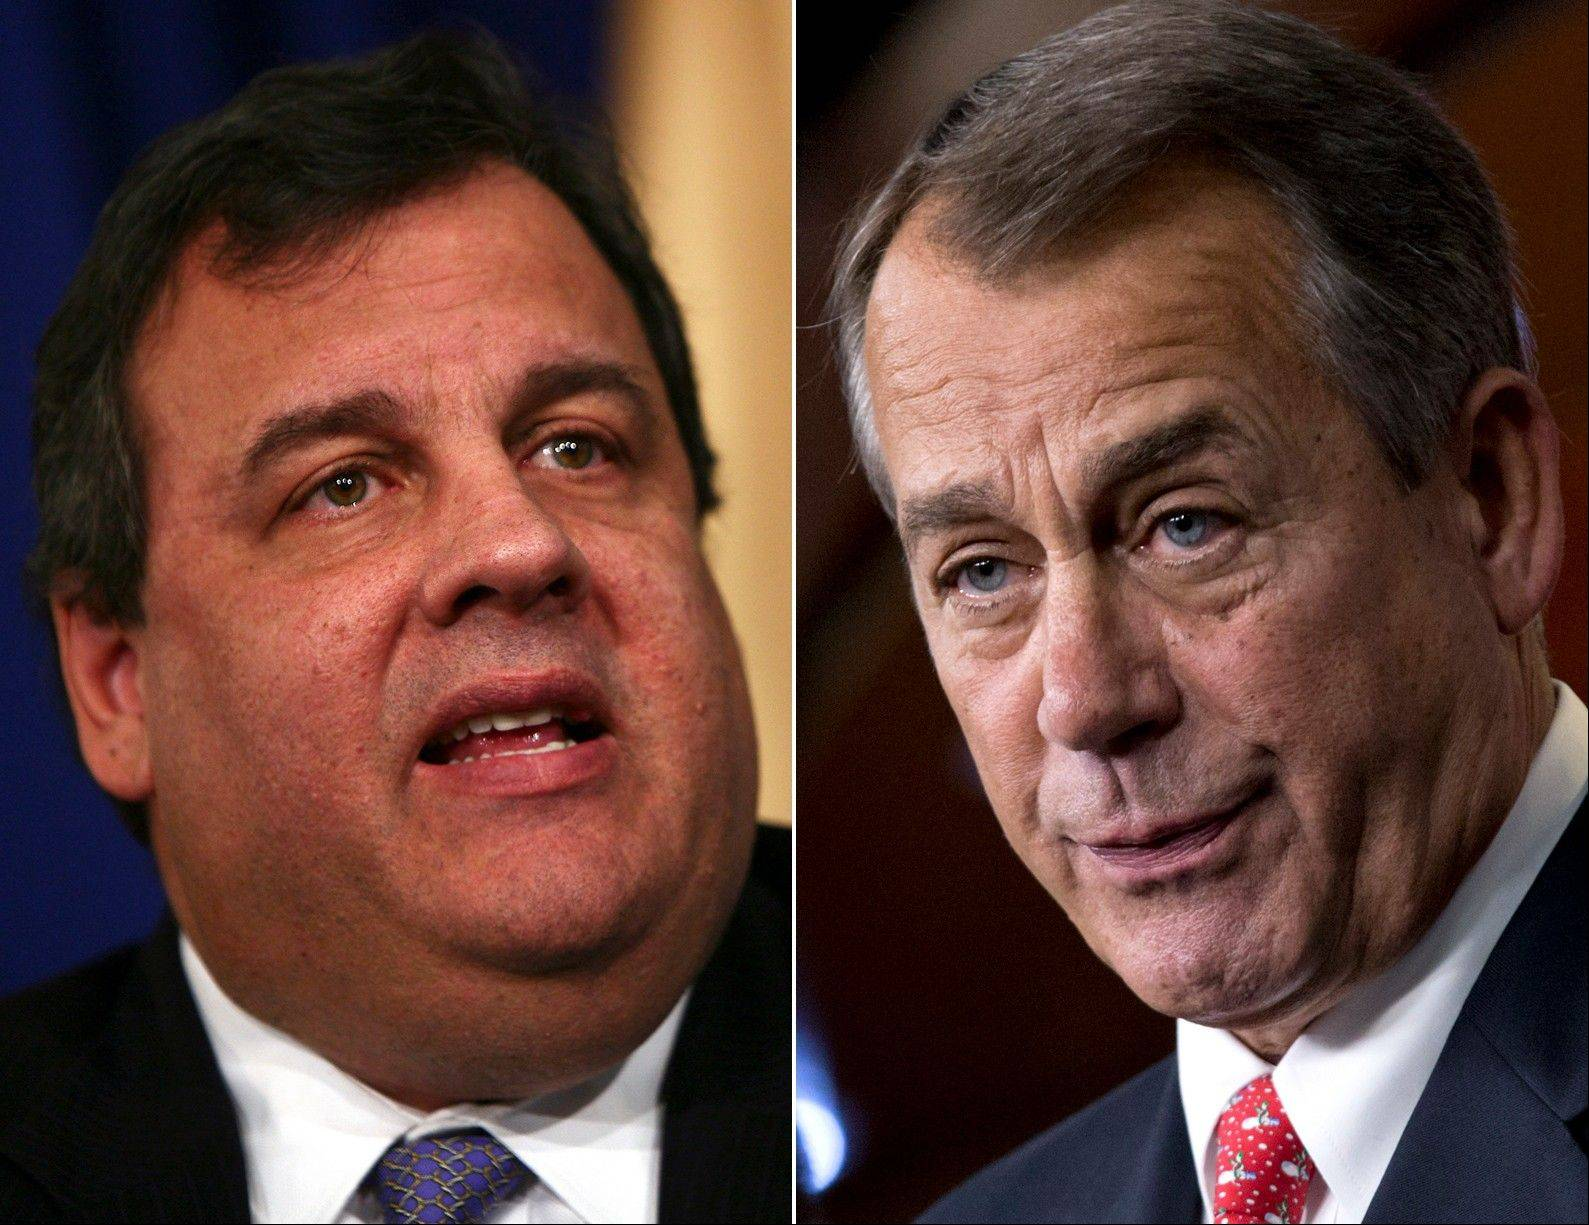 New Jersey Gov. Chris Christie, left, and U.S. Speaker of the House John Boehner, an Ohio Republican. Christie, a Republican who has praised President Barack Obama�s handling of Superstorm Sandy, blasted Boehner Wednesday for delaying a vote for federal storm relief.